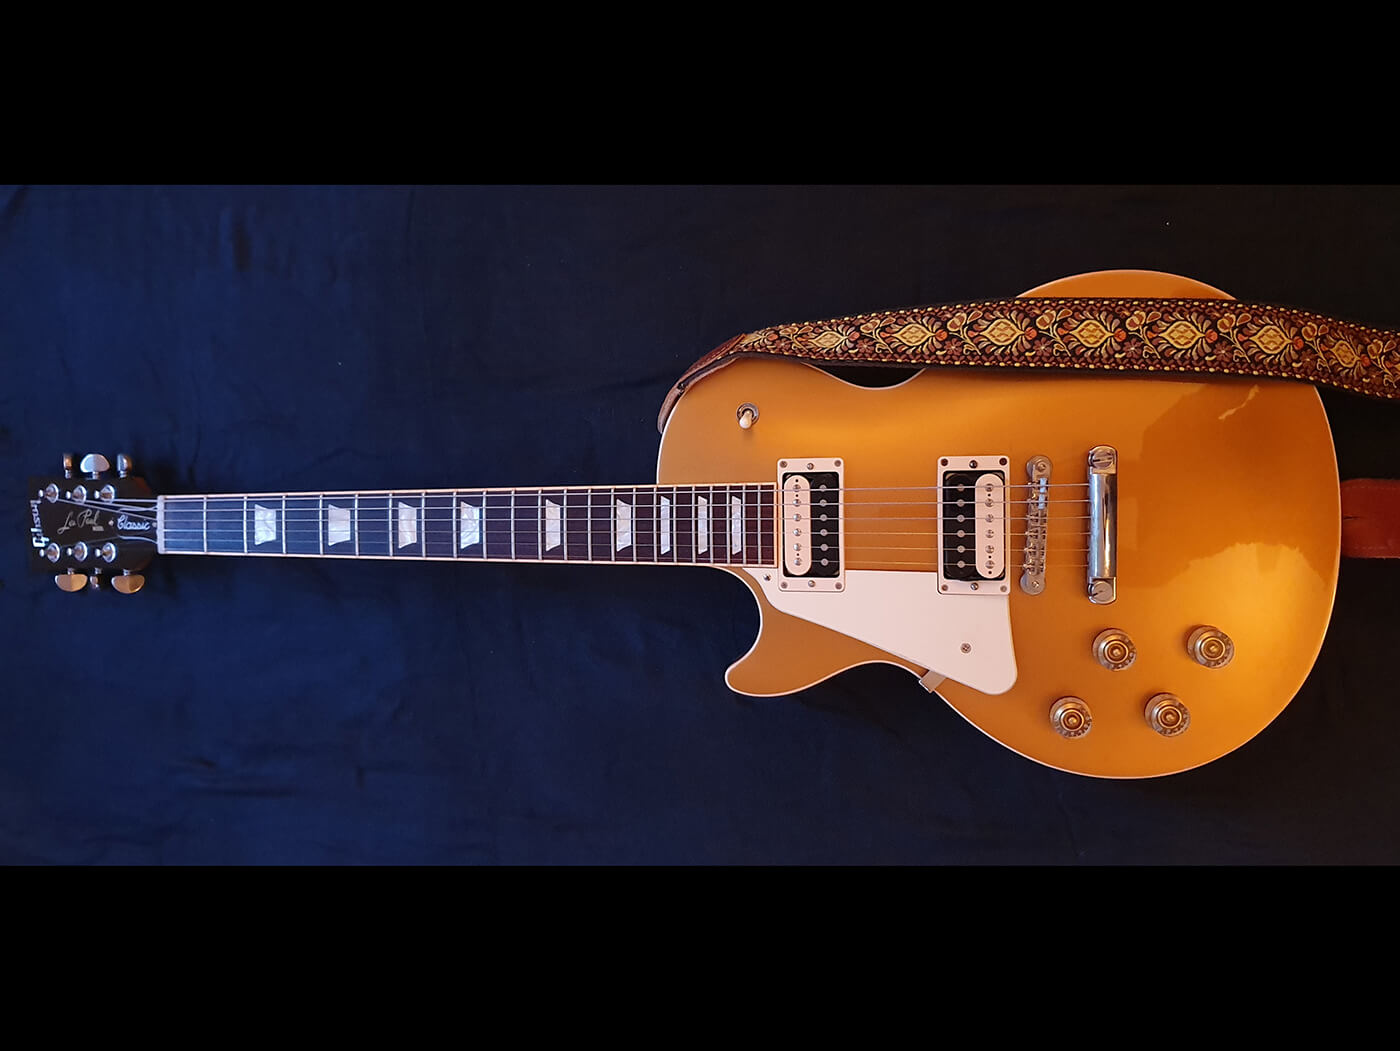 Liam Jeffery's Gibson Les Paul Classic Gold Top